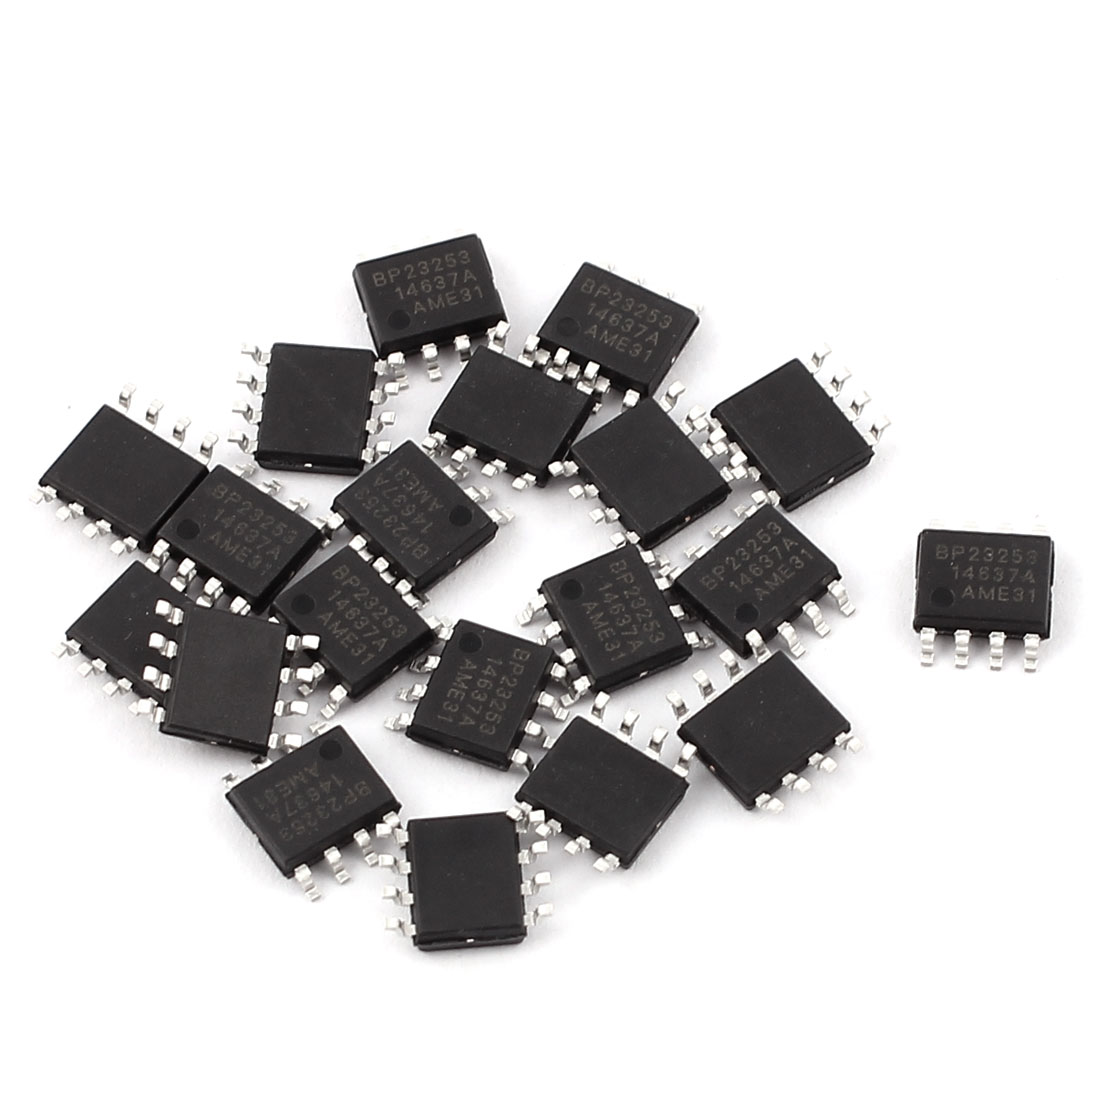 20Pcs BP23253 SOP-8 SMD SMT Type PCB Surface Mount LED Driver Circuit Module Integrated Circuit IC Chip